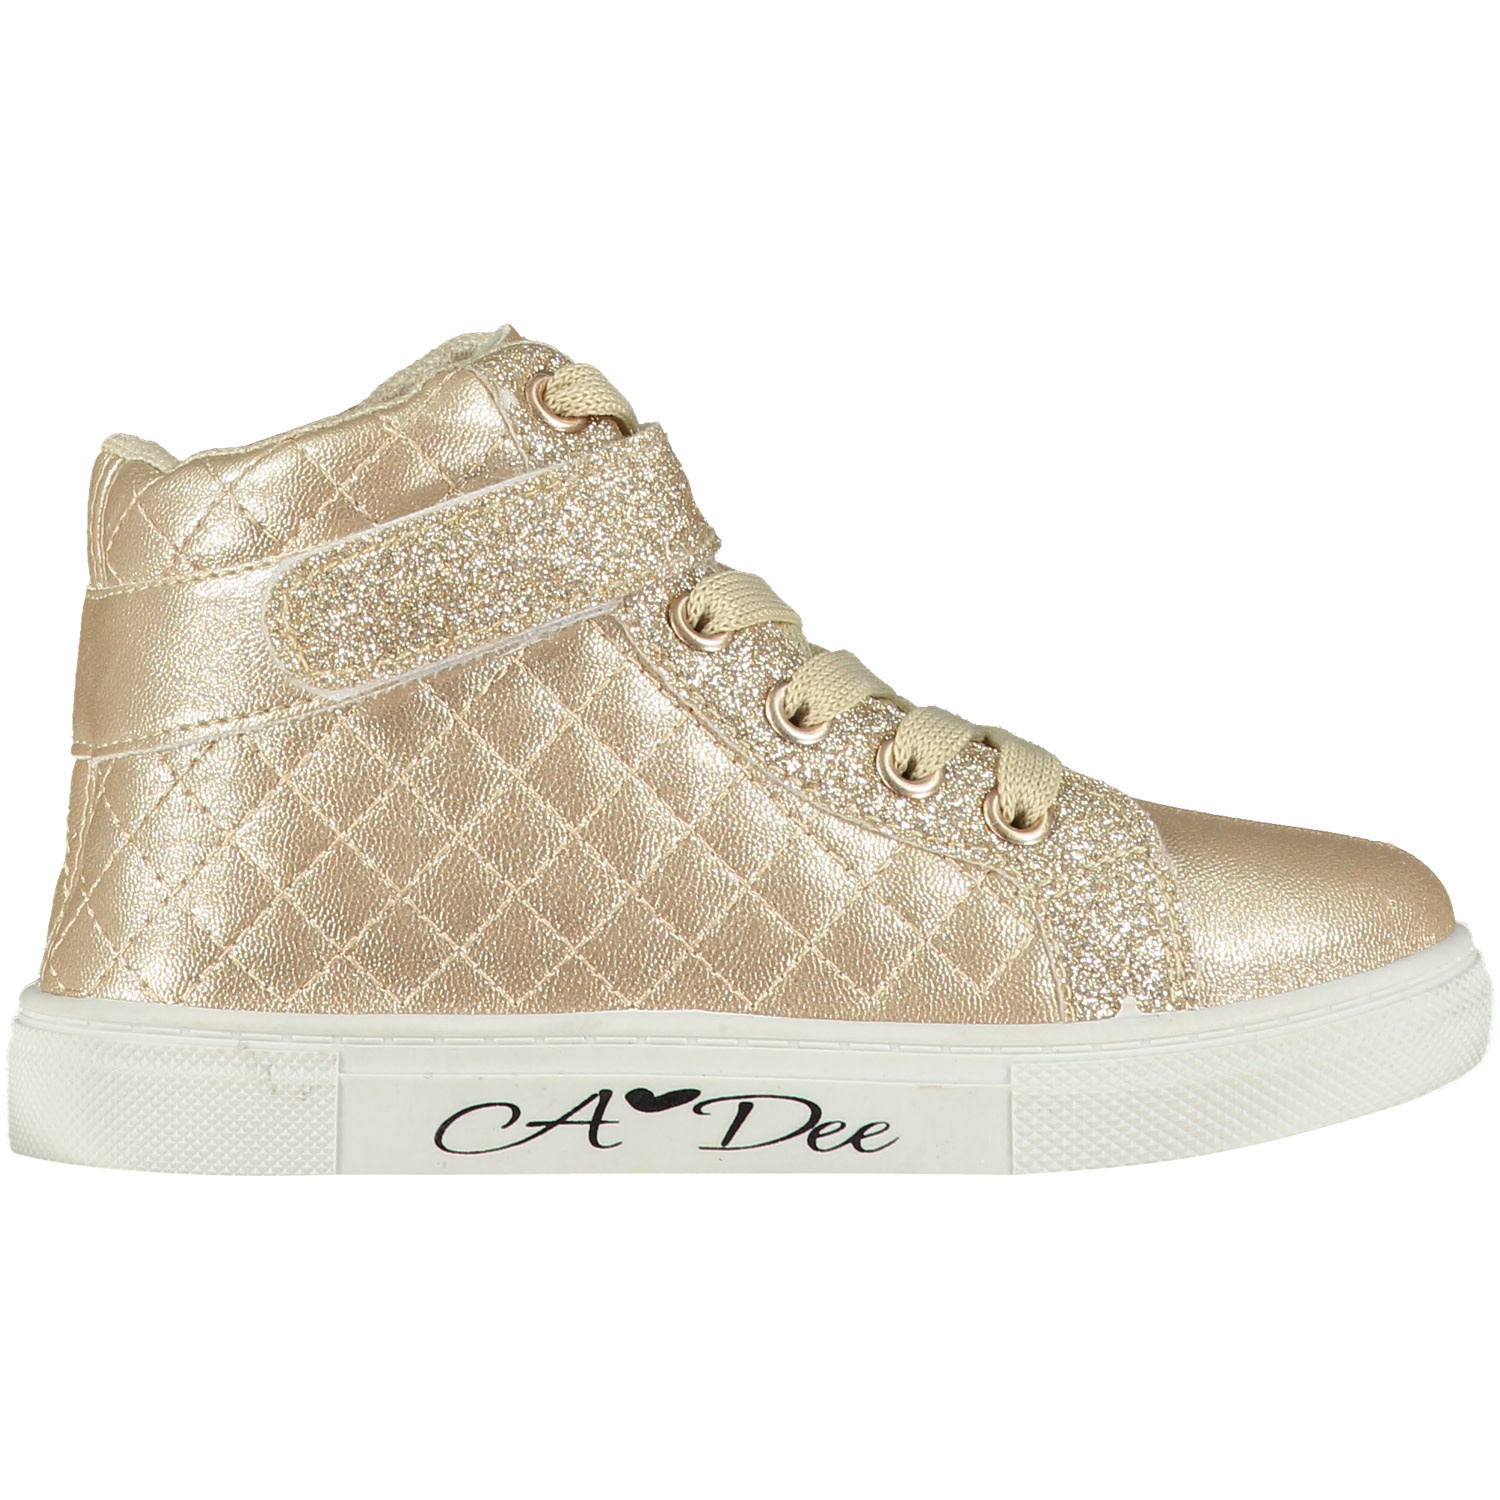 A Dee ADee Kriss Kross Champagne Quilted High Top Trainer